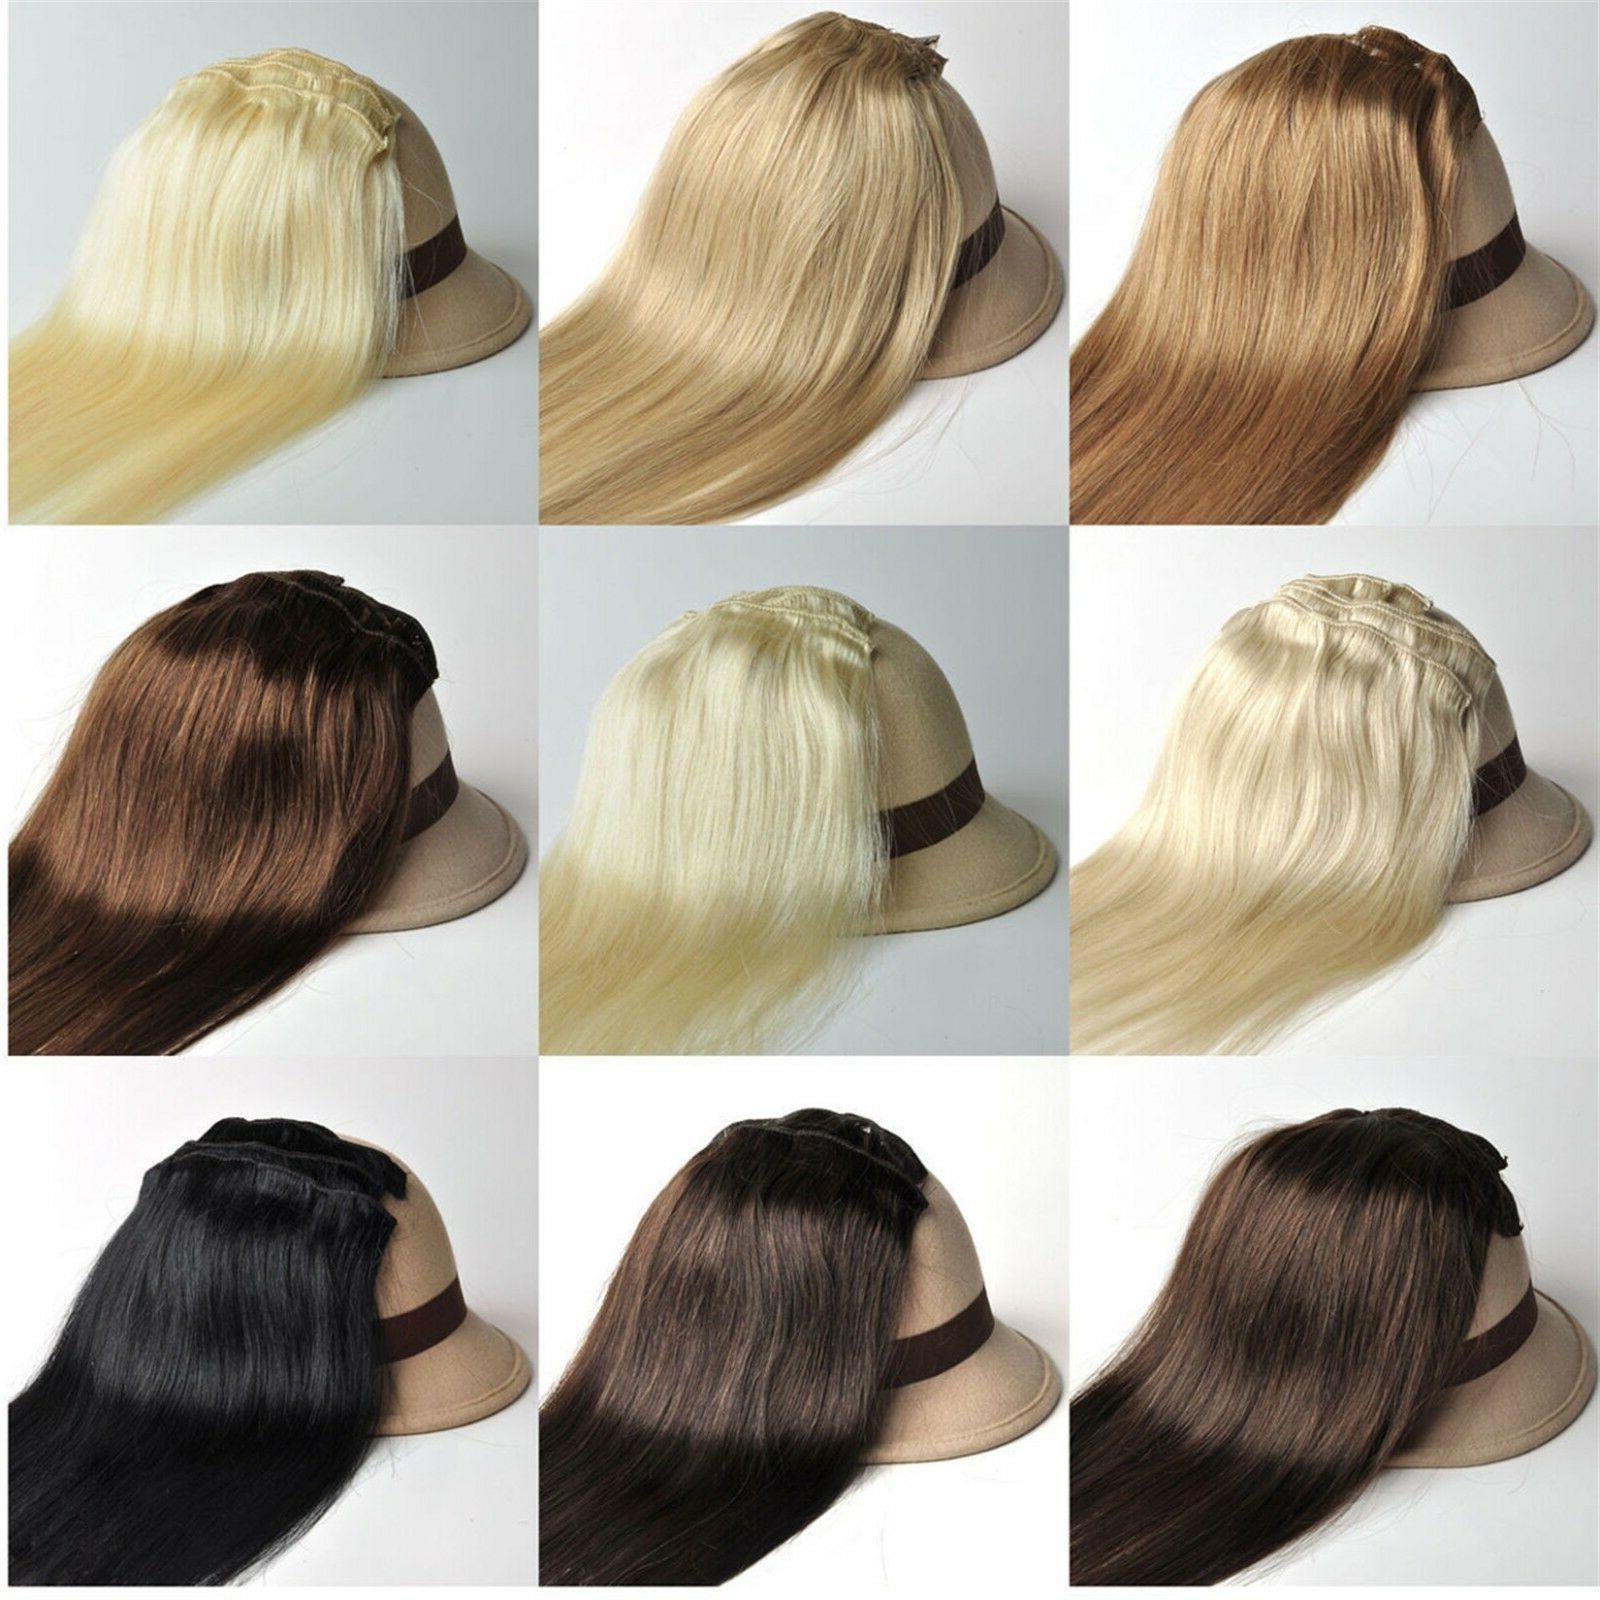 330g 12PCS Thick Remy Hair Extension Full Head